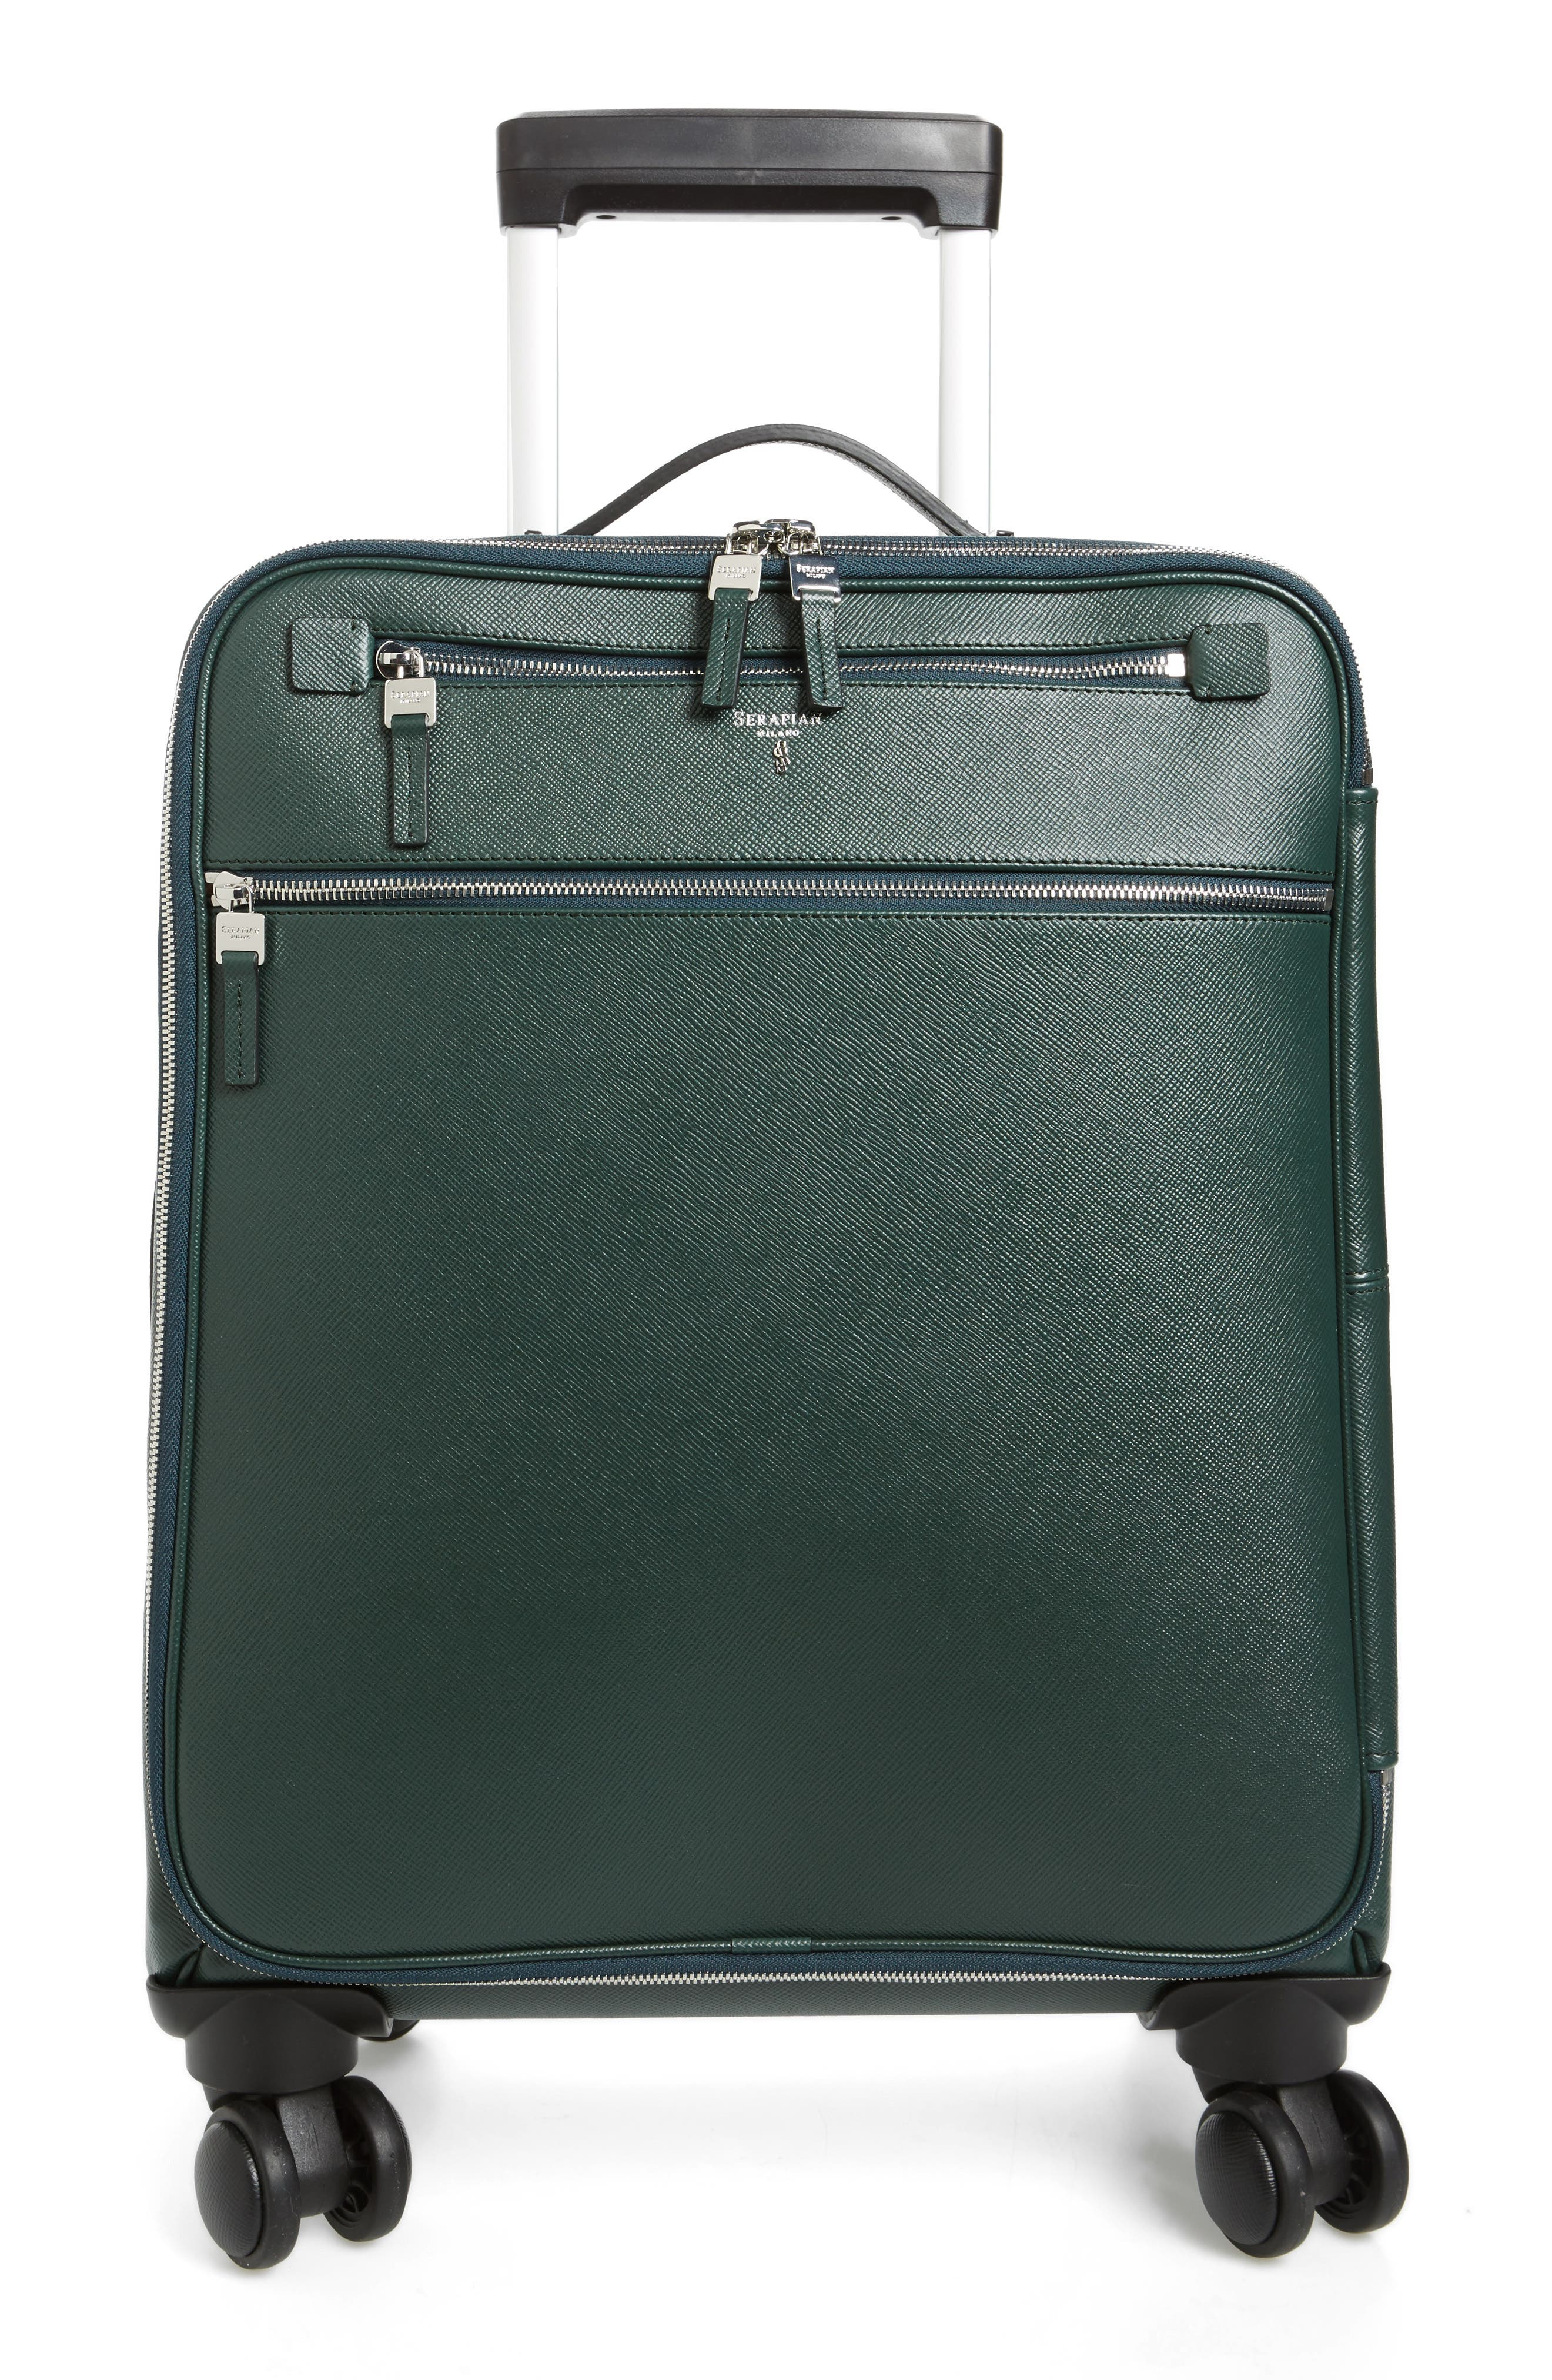 Main Image - Serapian Milano Trolley Spinner Wheeled Carry-On Suitcase